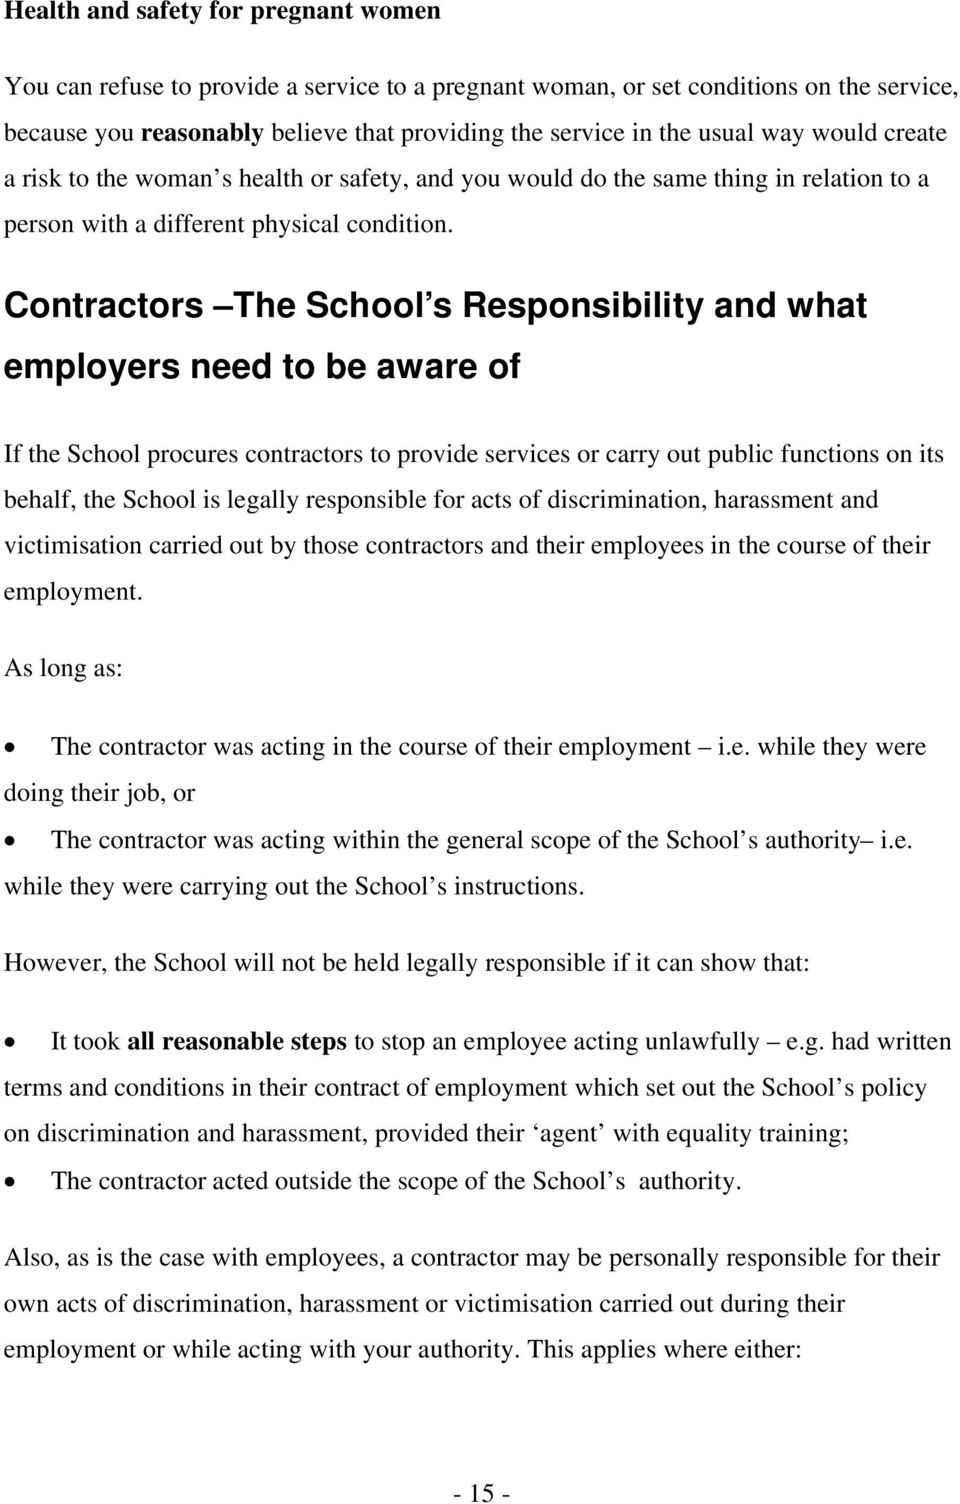 Contractors The School s Responsibility and what employers need to be aware of If the School procures contractors to provide services or carry out public functions on its behalf, the School is